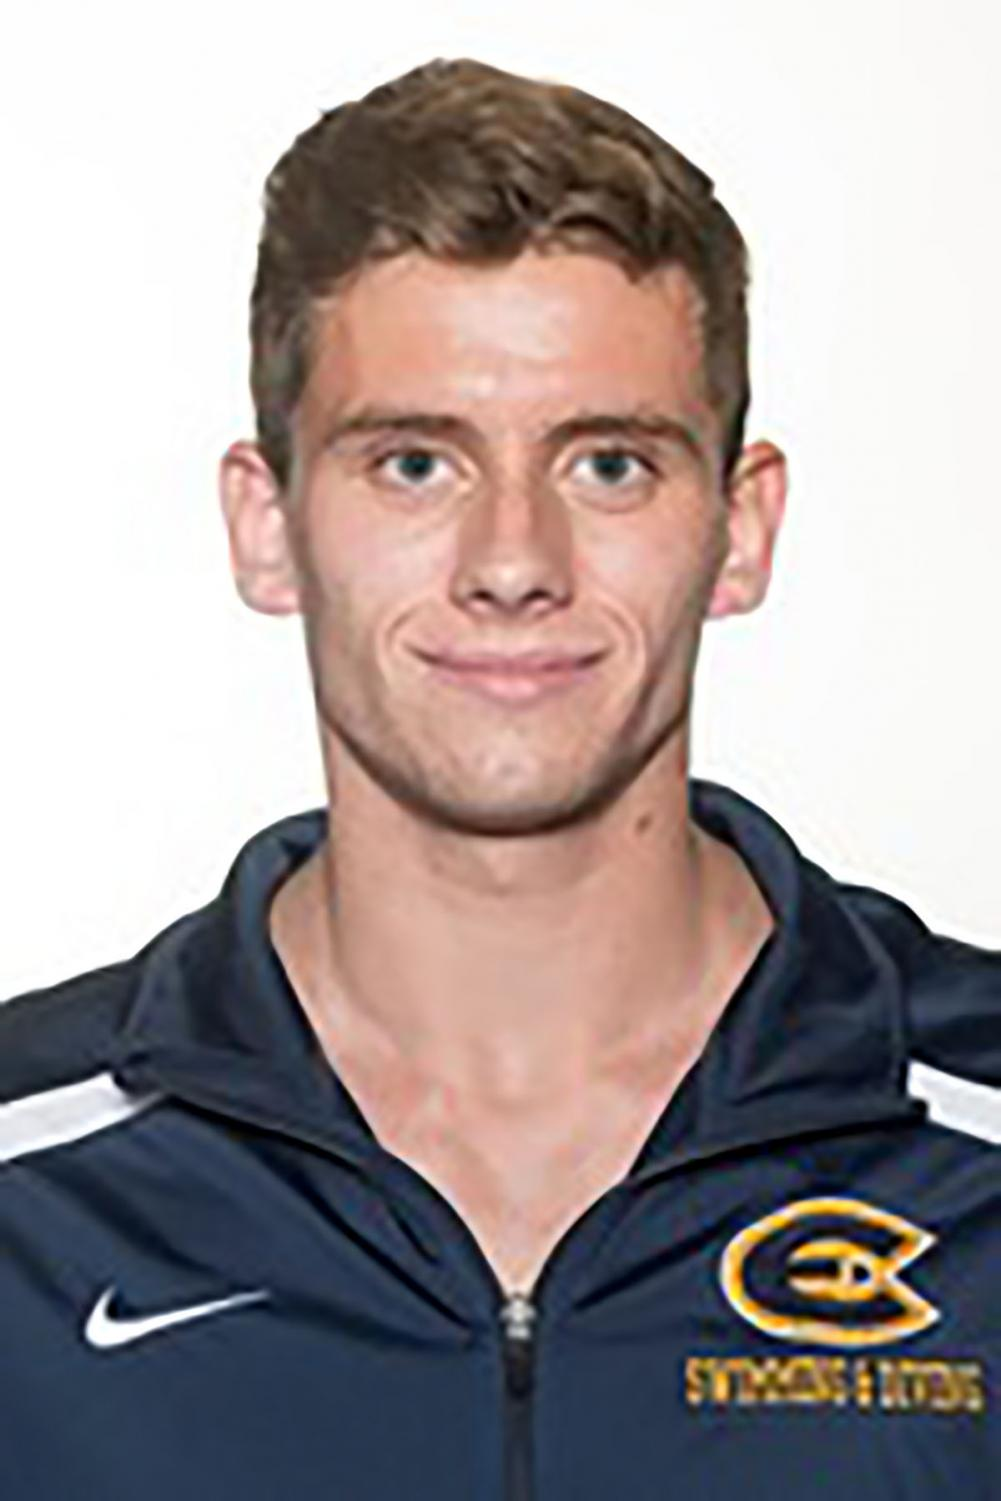 SUBMITTED Dylan Glumac-Berberich is a third-year diver on the UW-Eau Claire swimming and diving team.